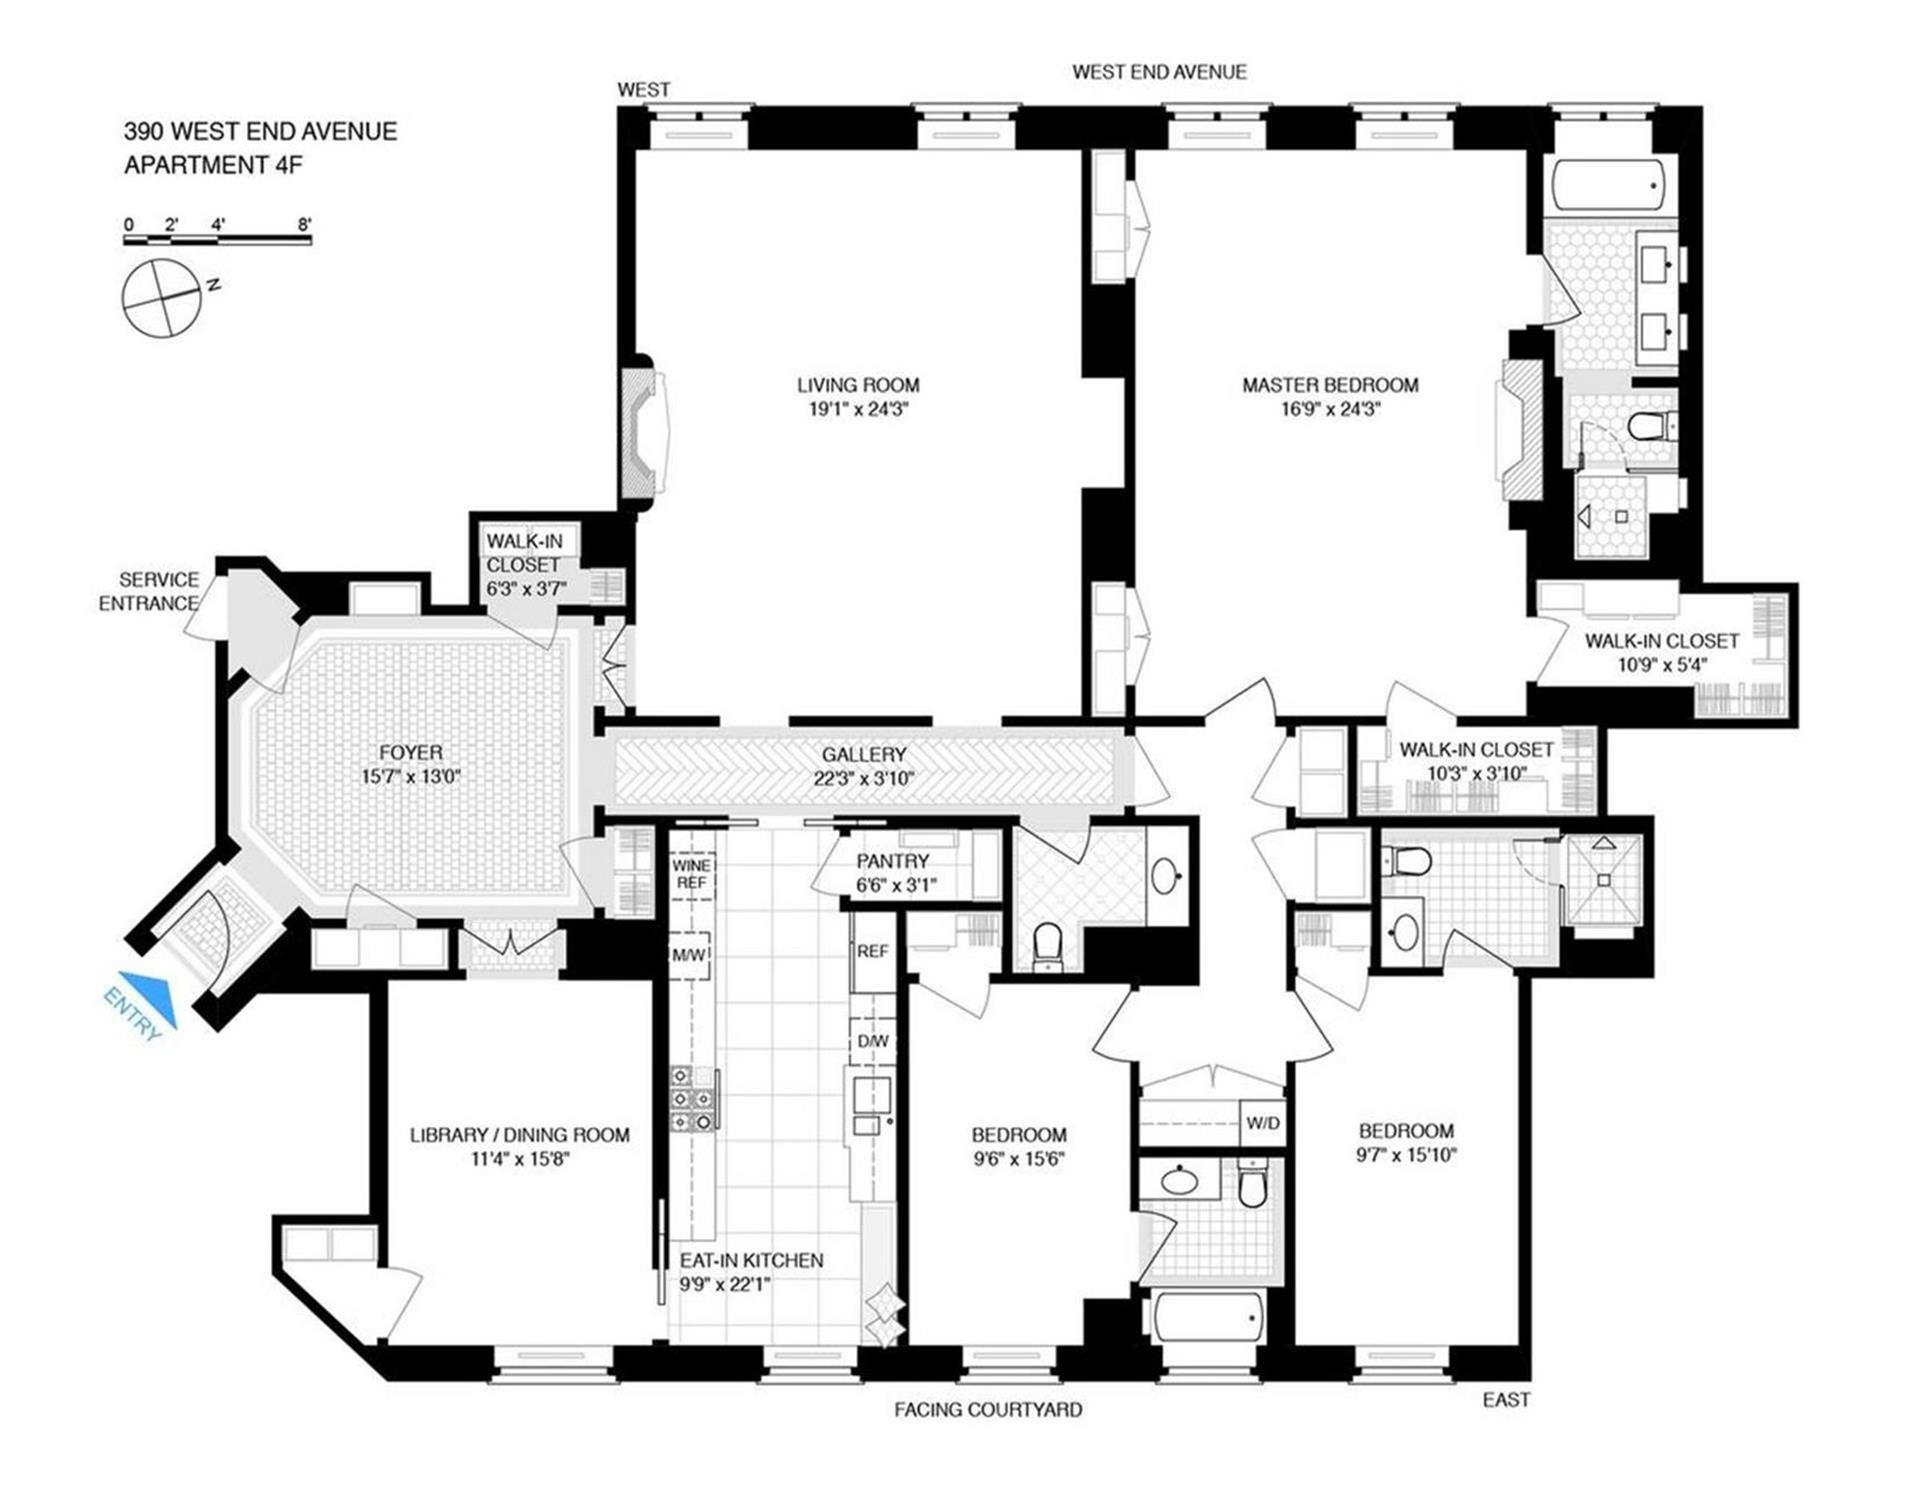 Floor plan of THE APTHORP, 2211 BROADWAY, 4FR - Upper West Side, New York